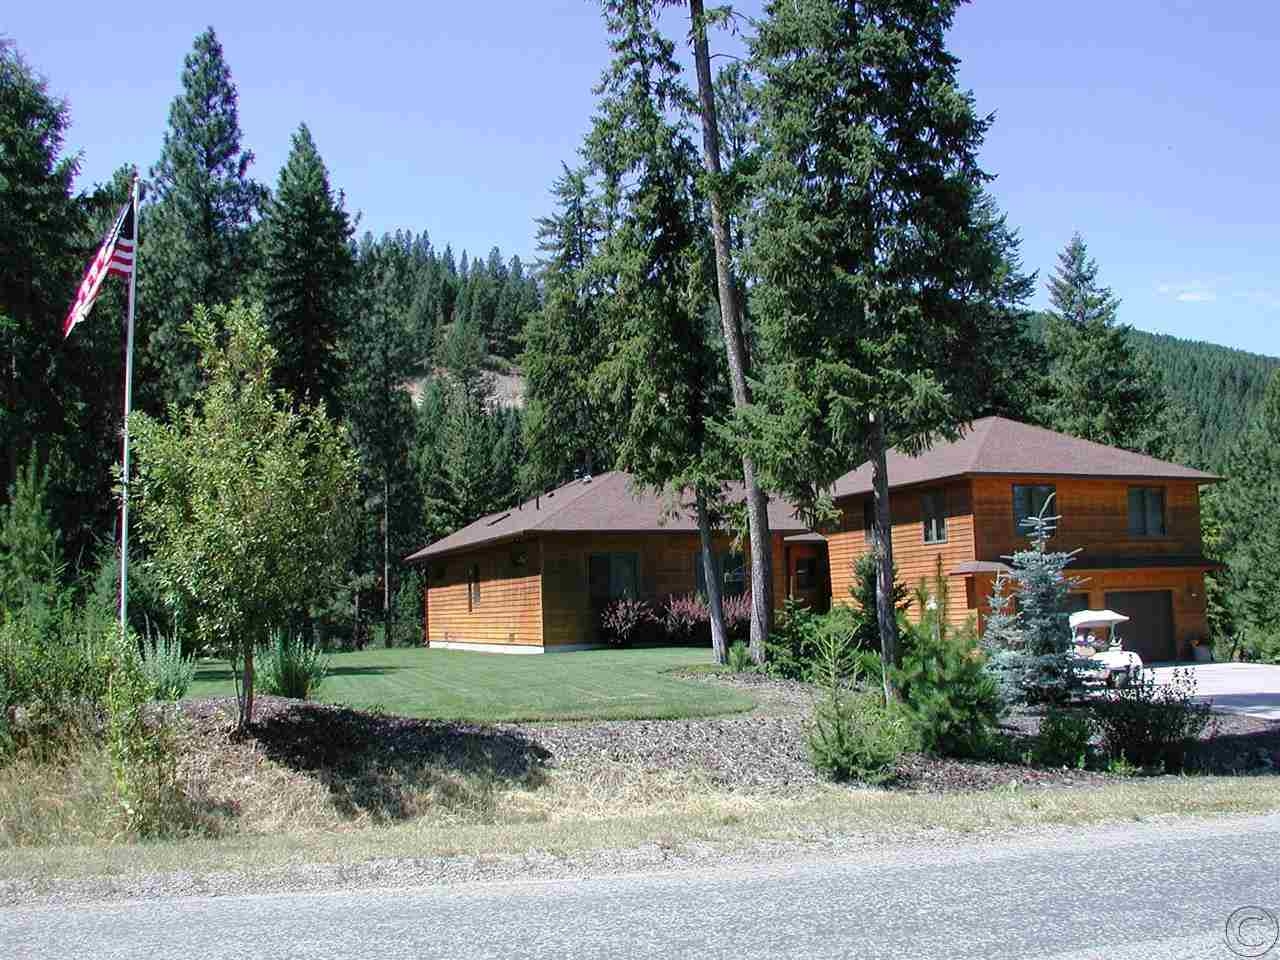 552 Trestle Creek Dr, Saint Regis, MT 59866